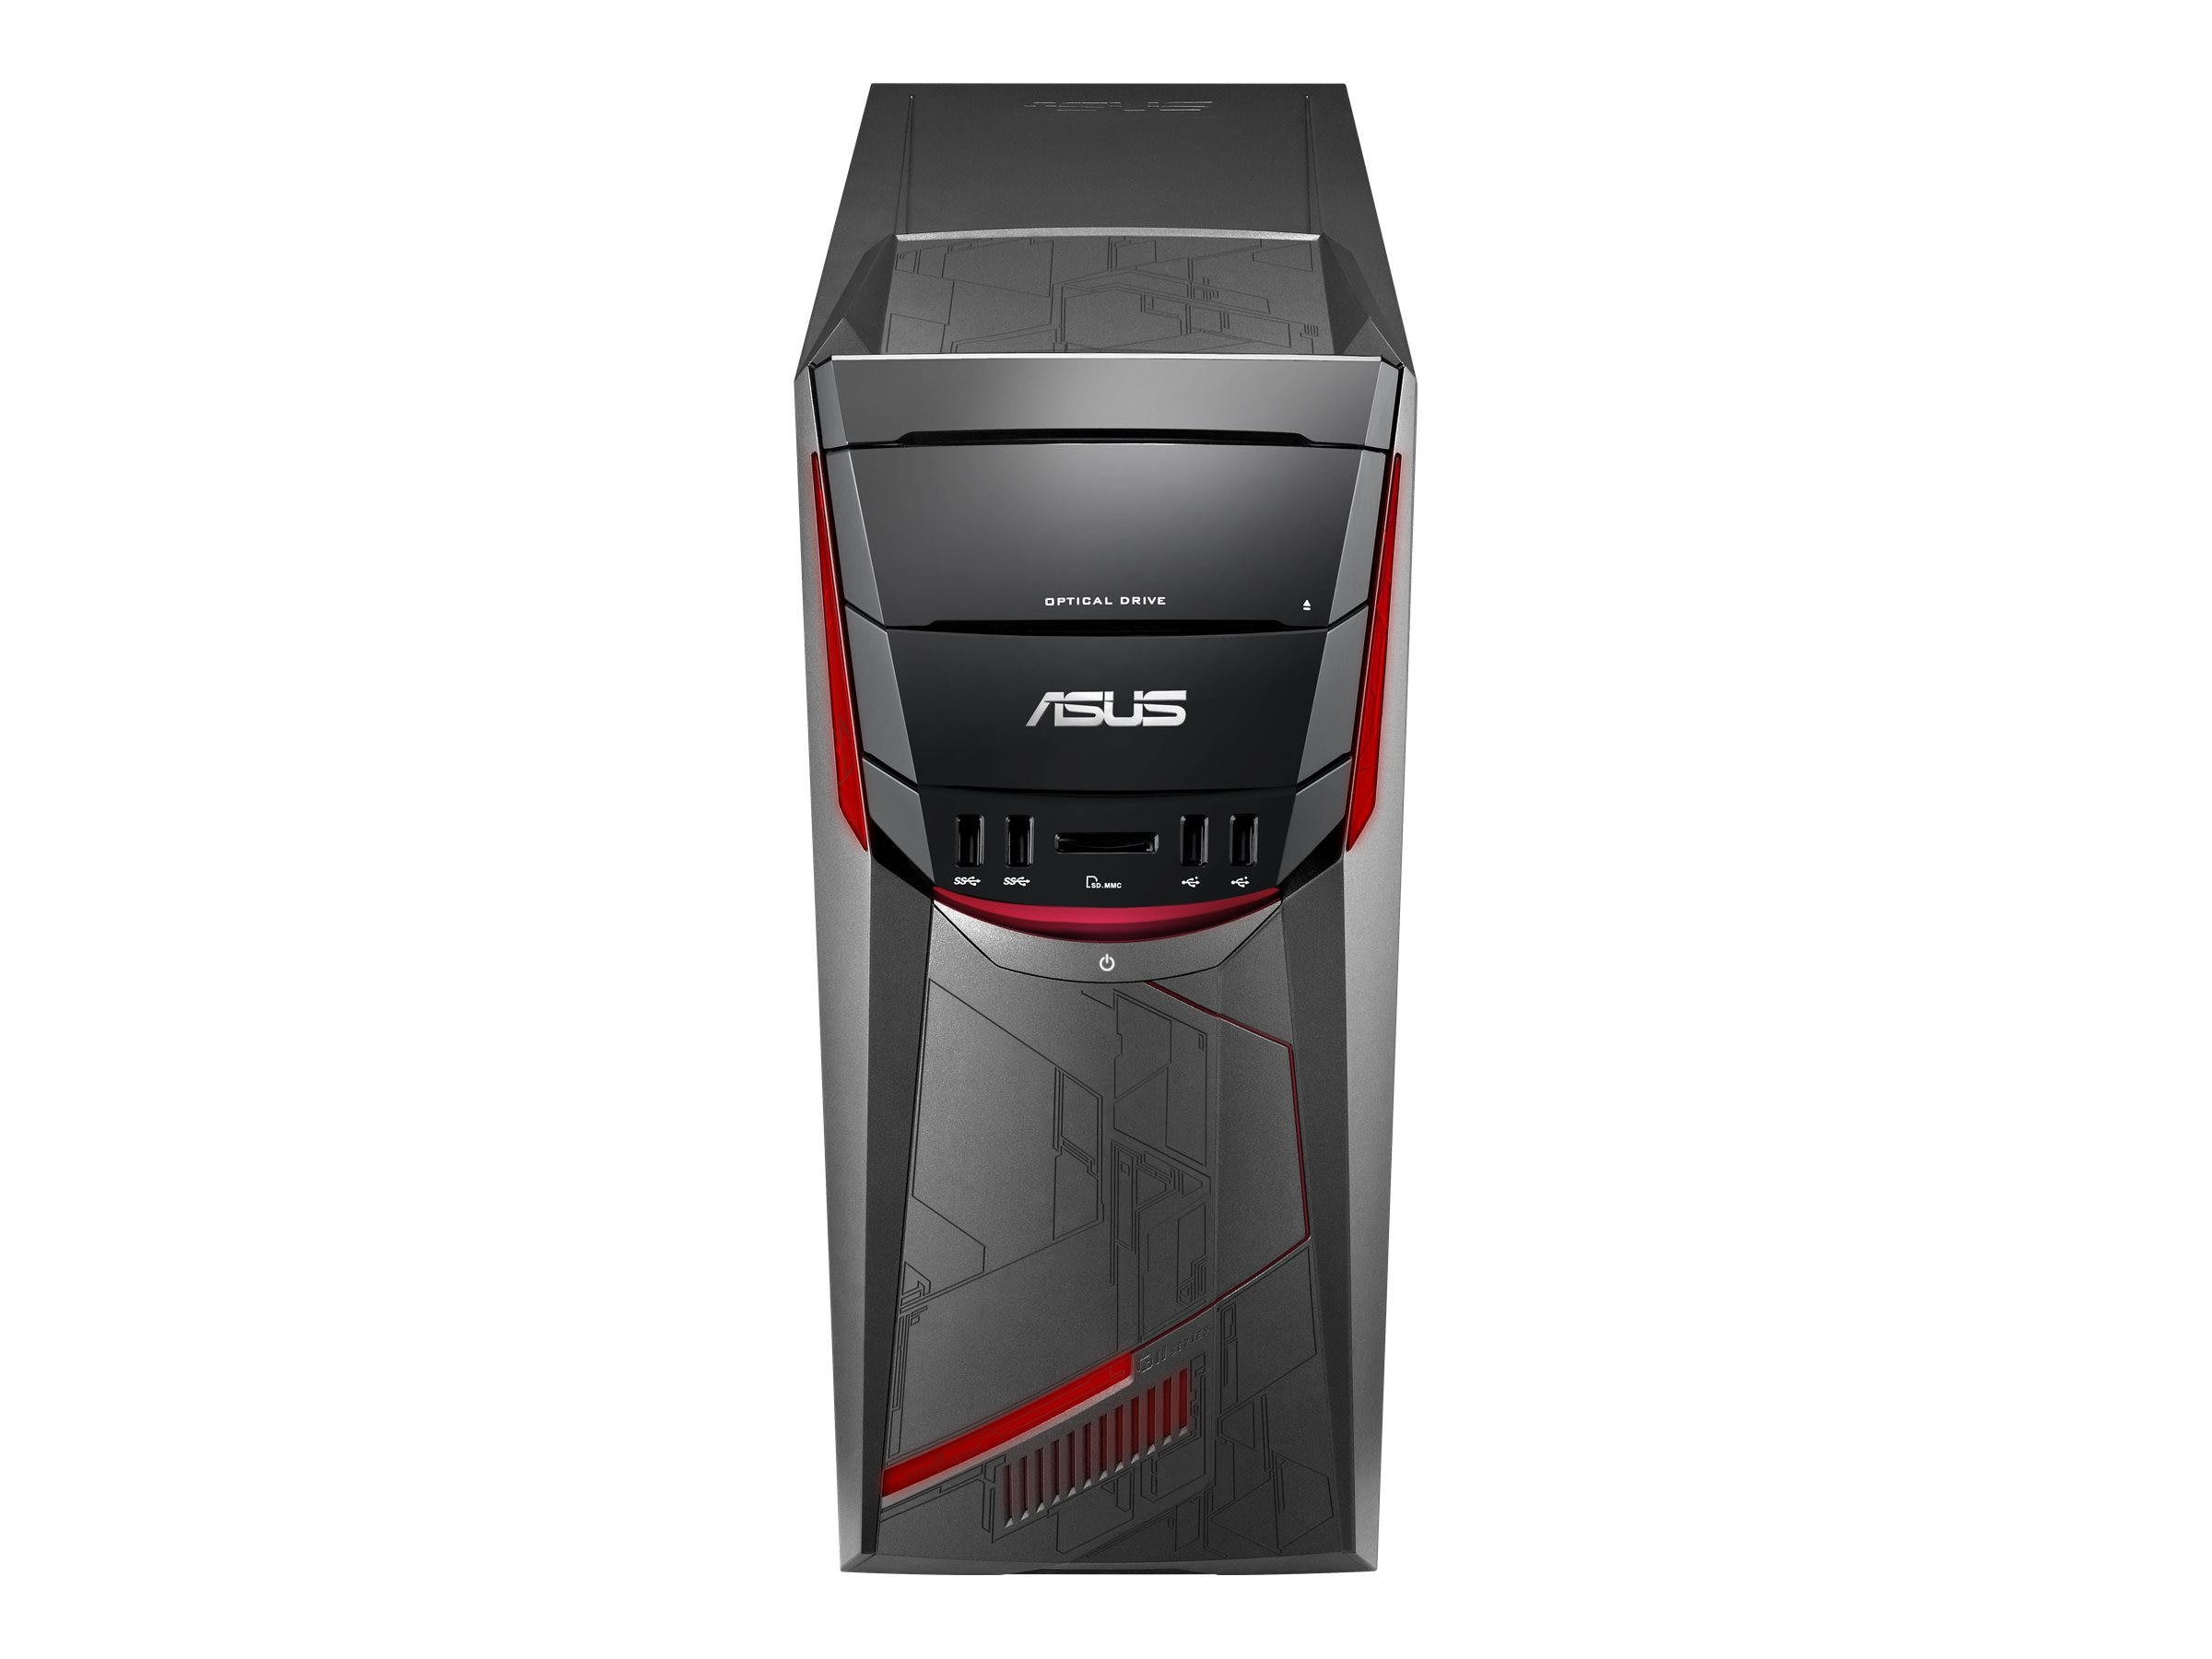 Asus G11CD-DB71 Tower Core i7-6700 16GB 1TB W10